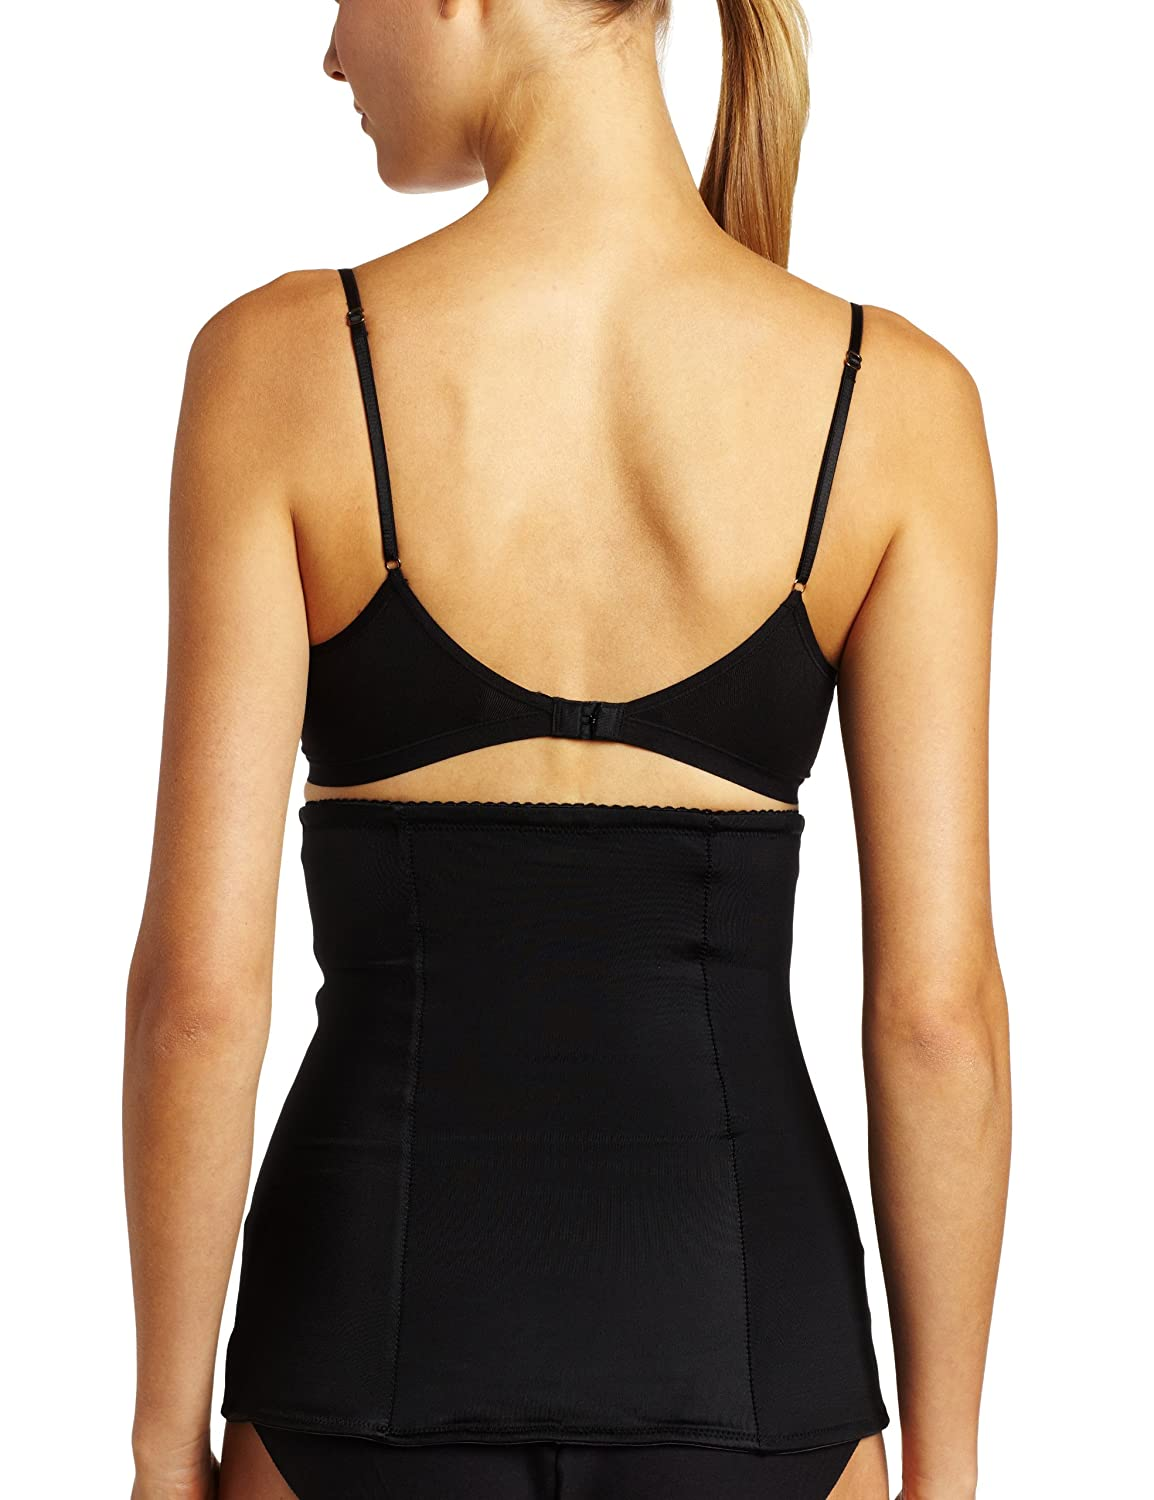 44be1db461fd4 Flexees by Maidenform Women s Pretty Shapewear Lace Waist Nipper at Amazon  Women s Clothing store  Flexees Firm Control